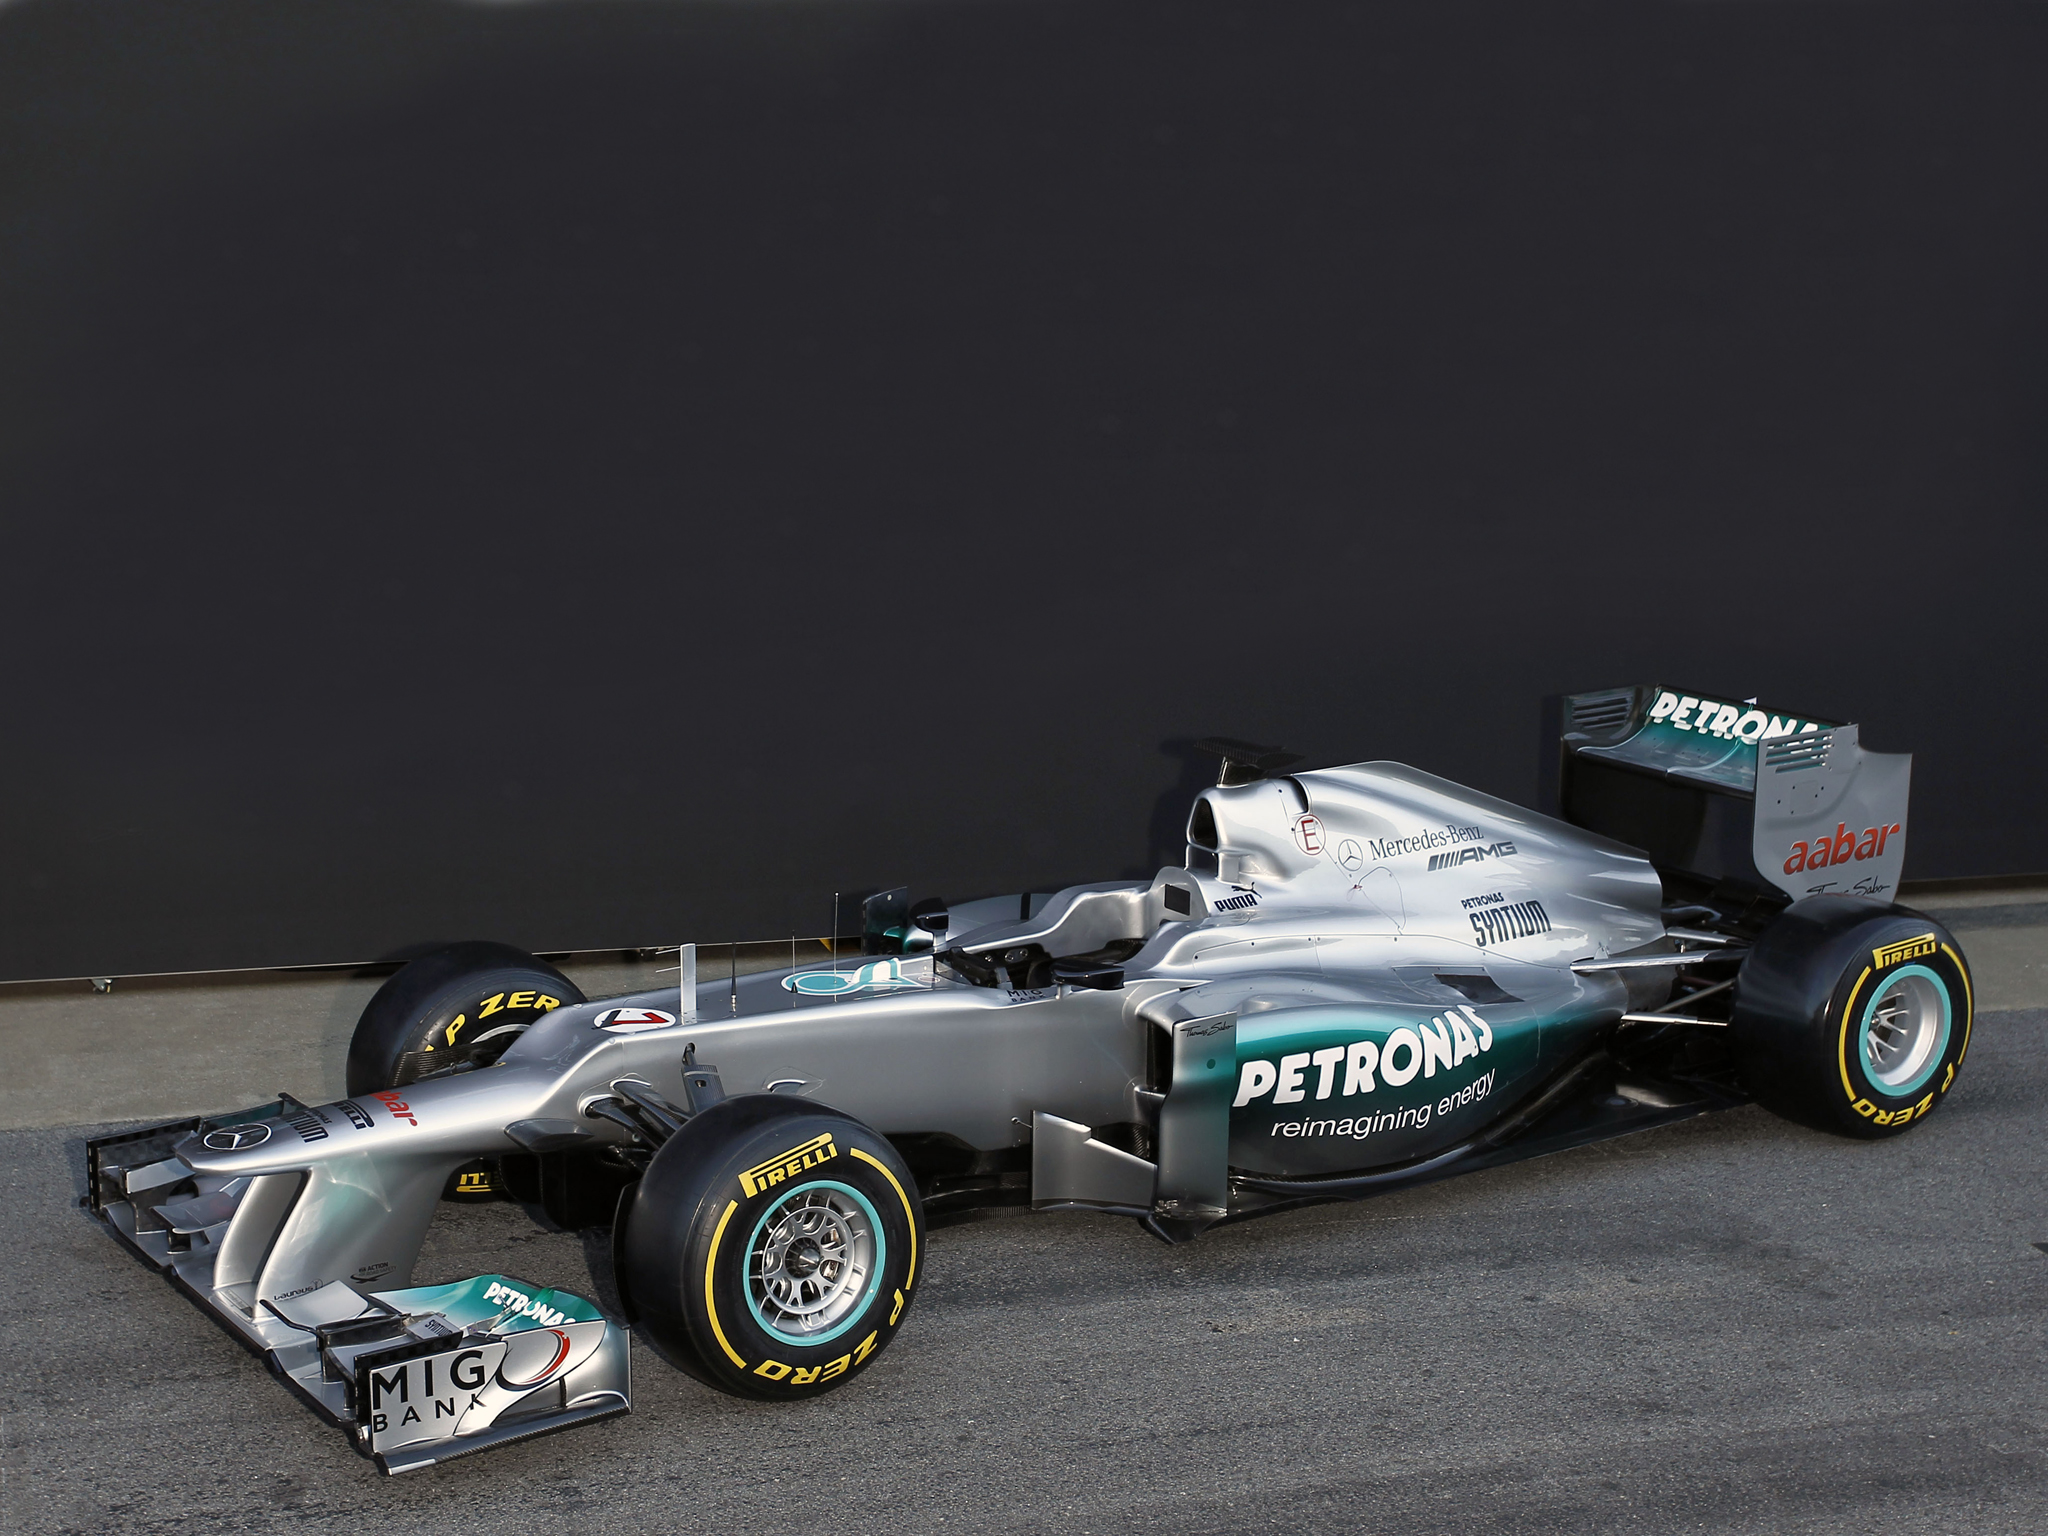 Wallpapers Mercedes GP F1 2013